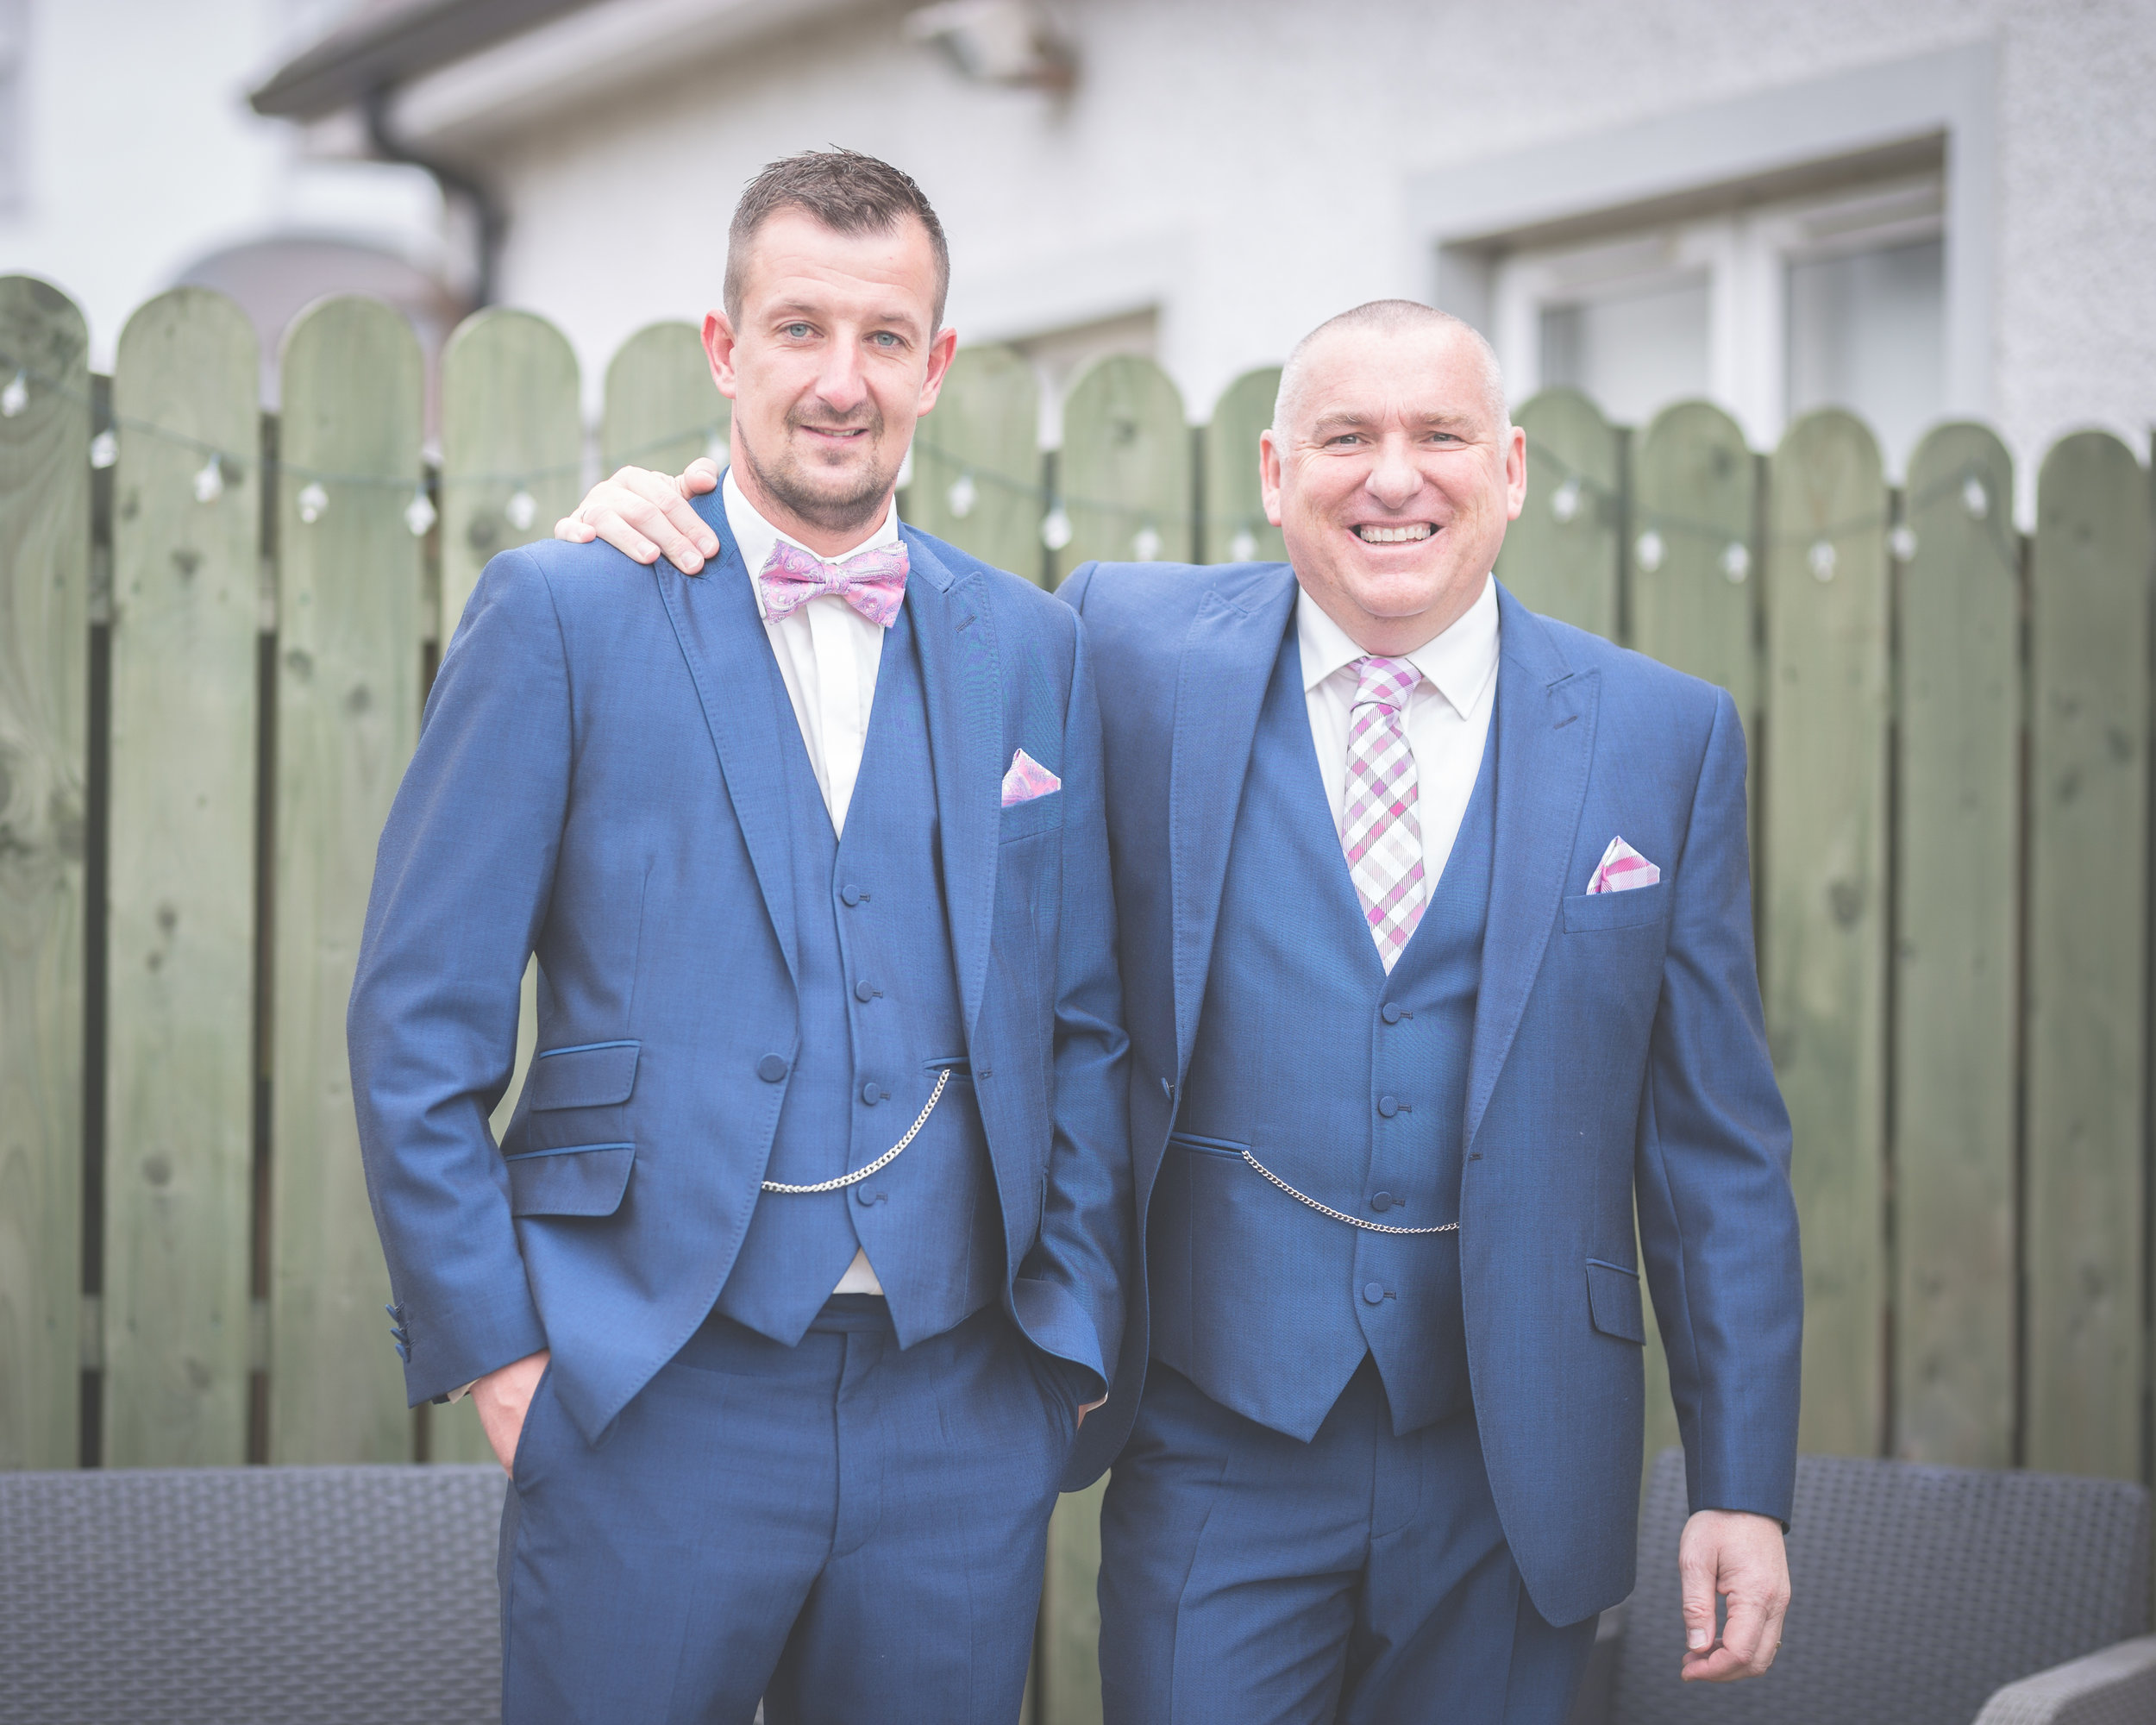 Antoinette & Stephen - Groom & Groomsmen | Brian McEwan Photography | Wedding Photographer Northern Ireland 53.jpg